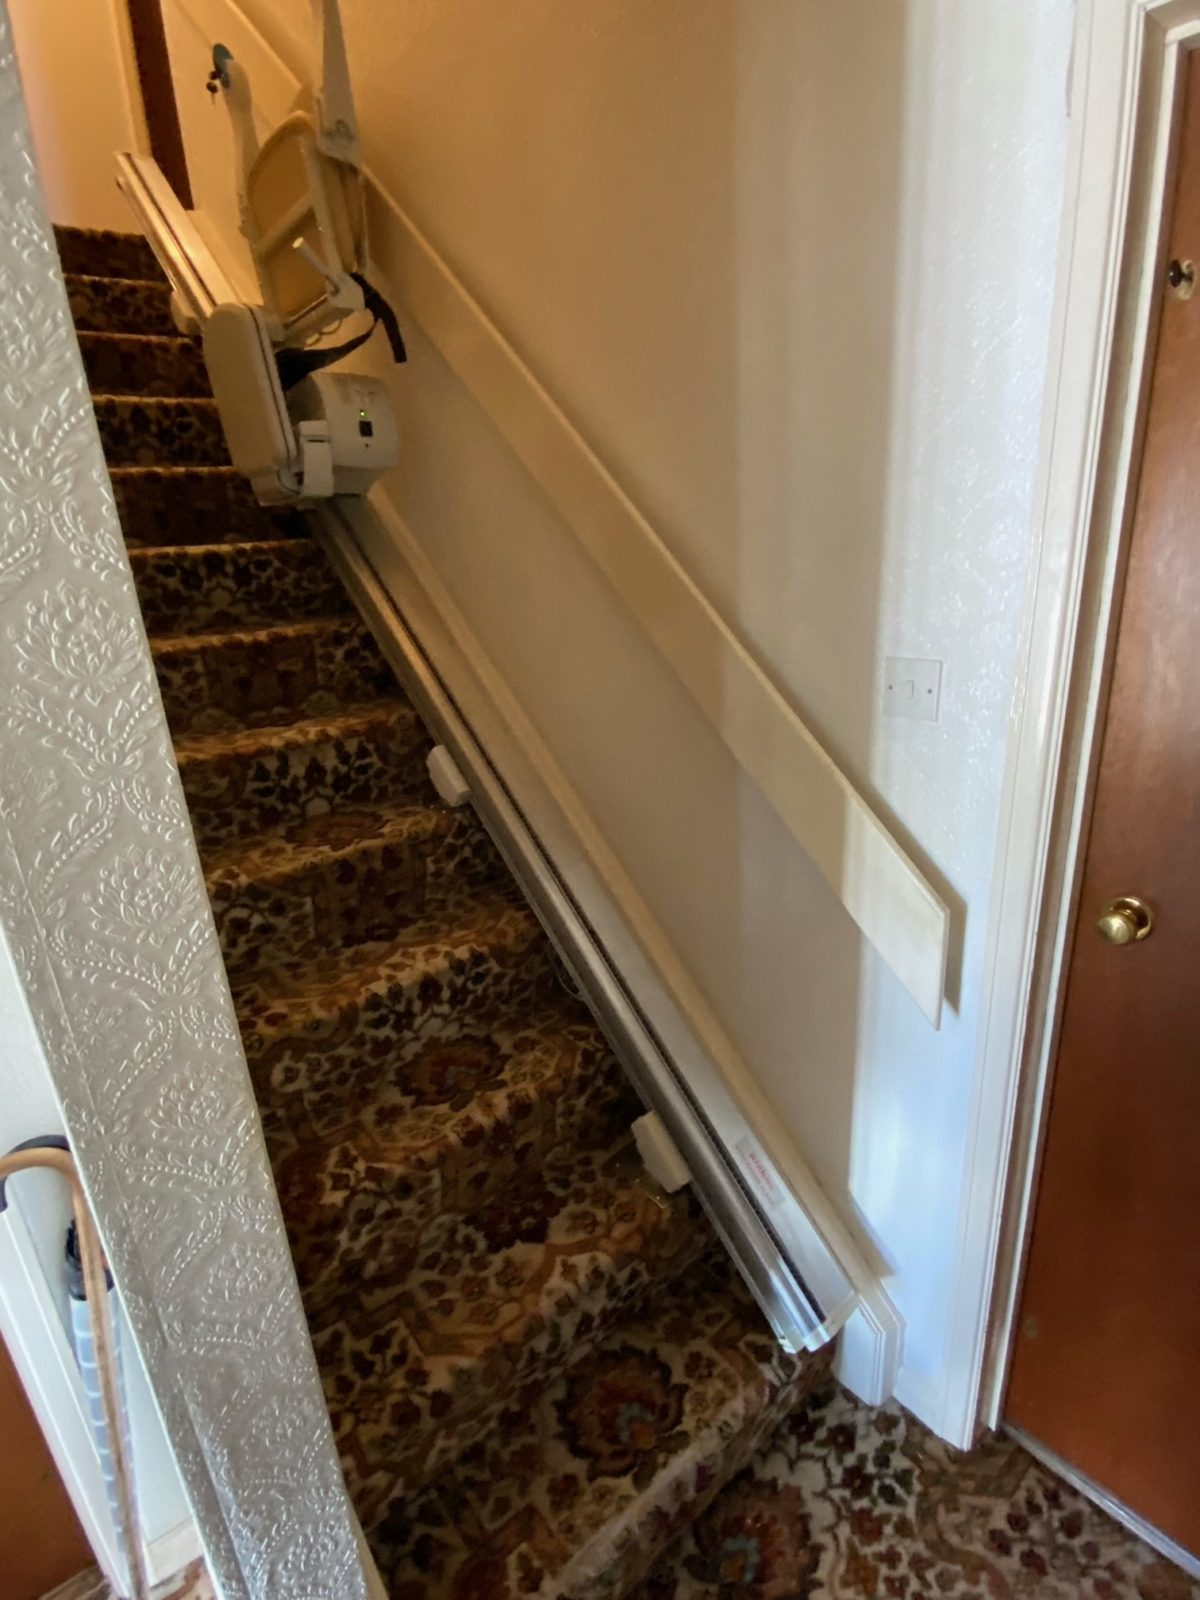 Minivator 950 stairlift installed in Stairlift installation in Waltham